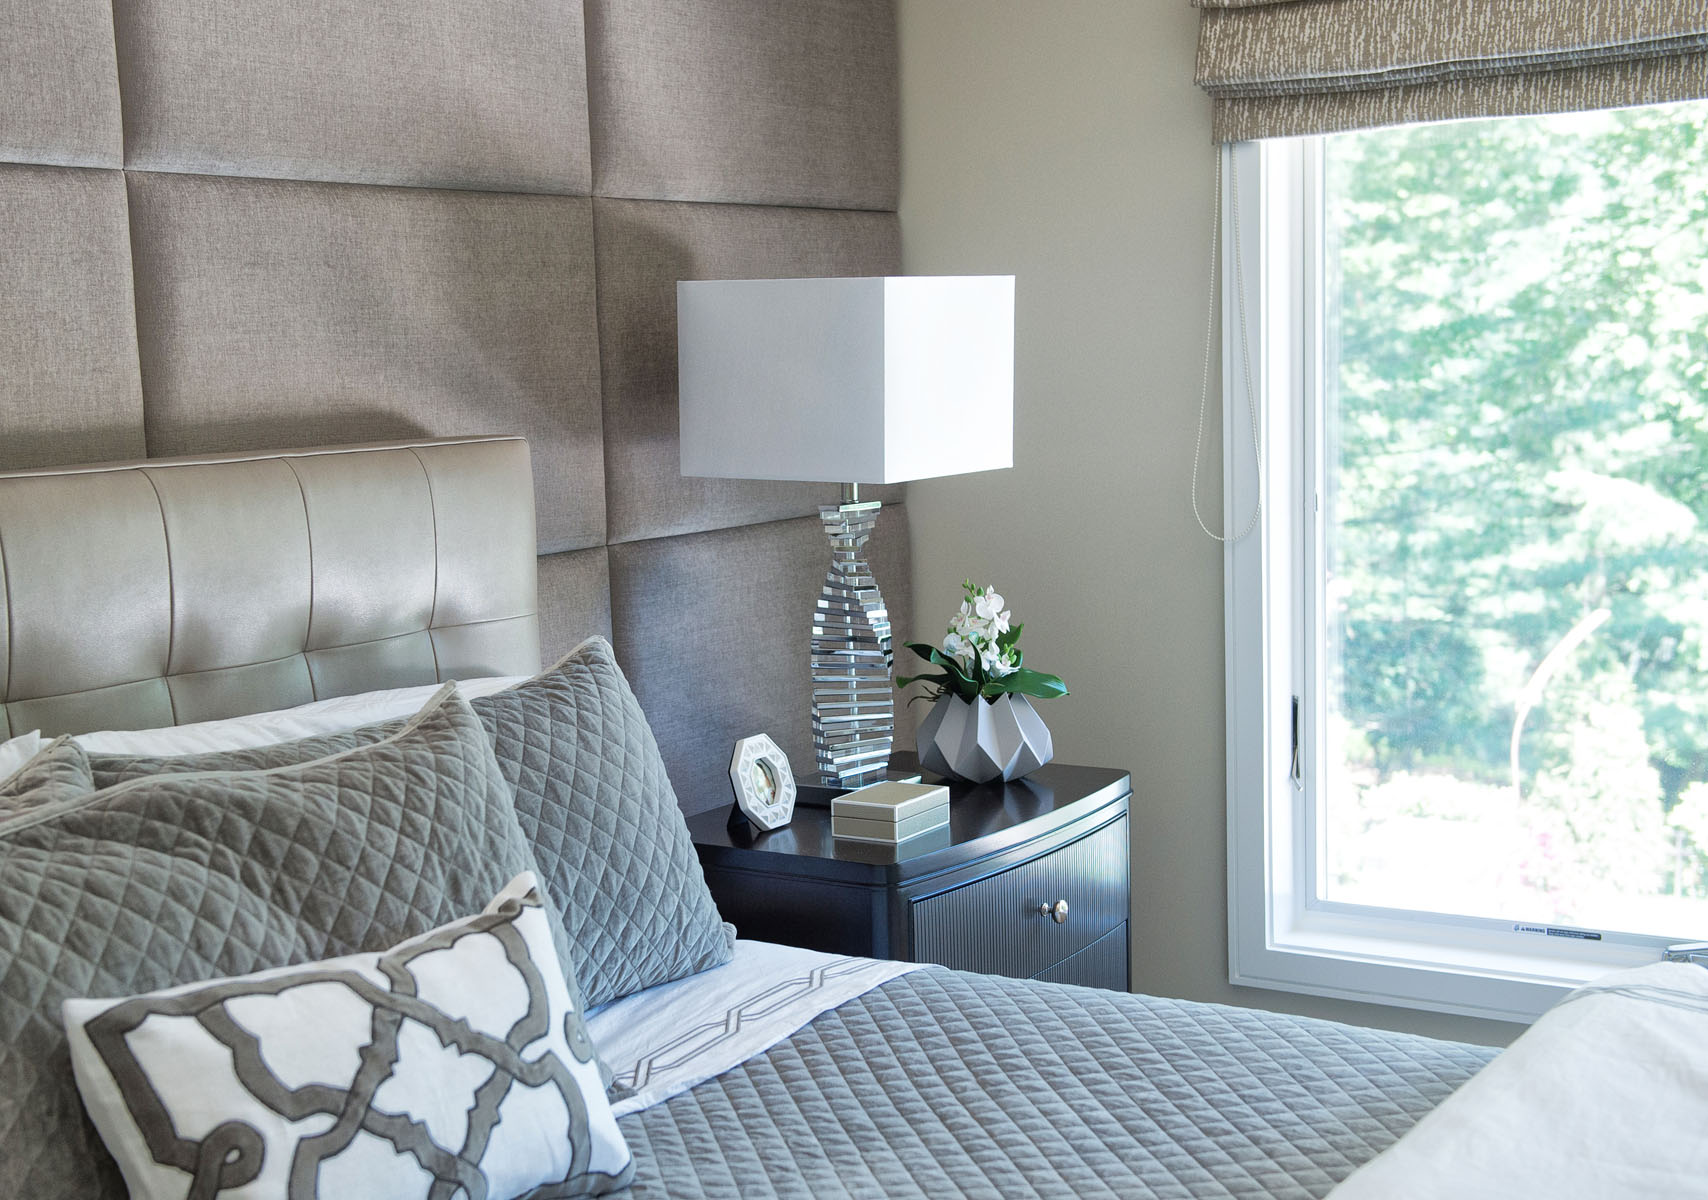 Master Bedroom Renovation, Bedford, NY by Lara Michelle Interiors